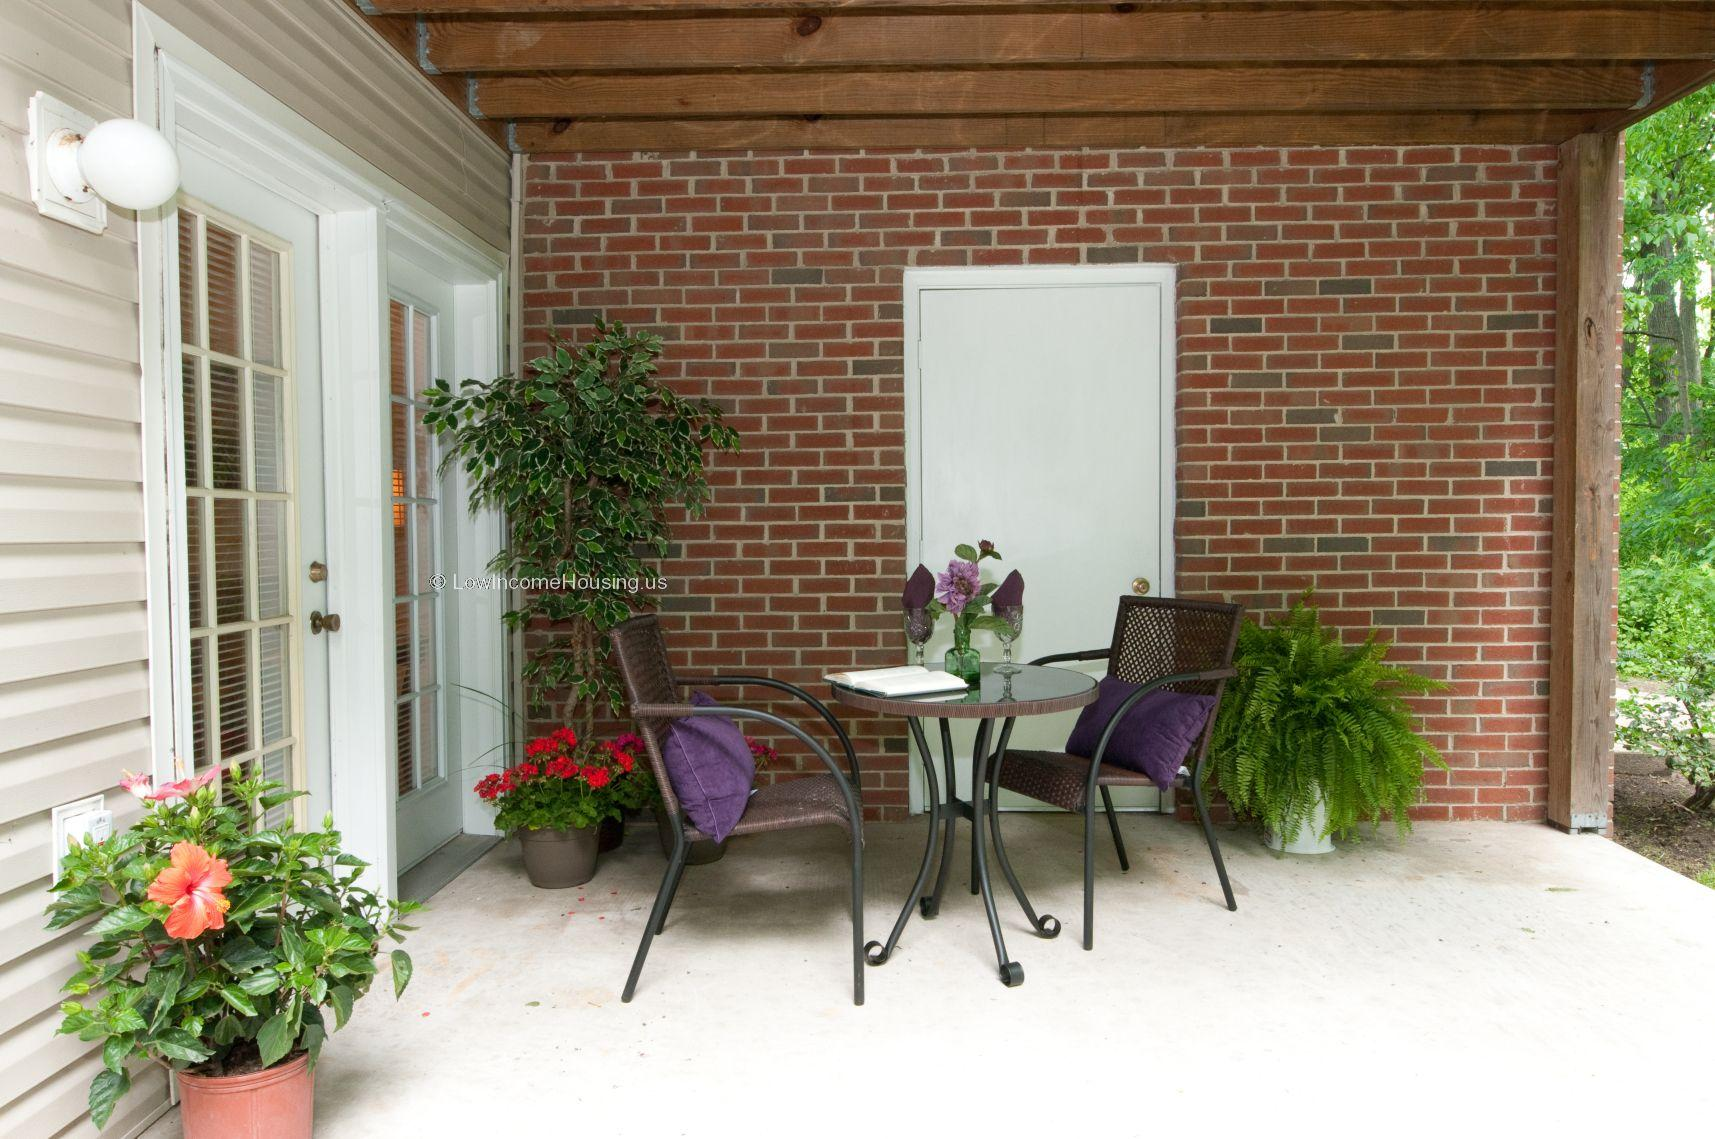 Wrought iron patio table and chairs were obtained locally and were delivered in 3 days.